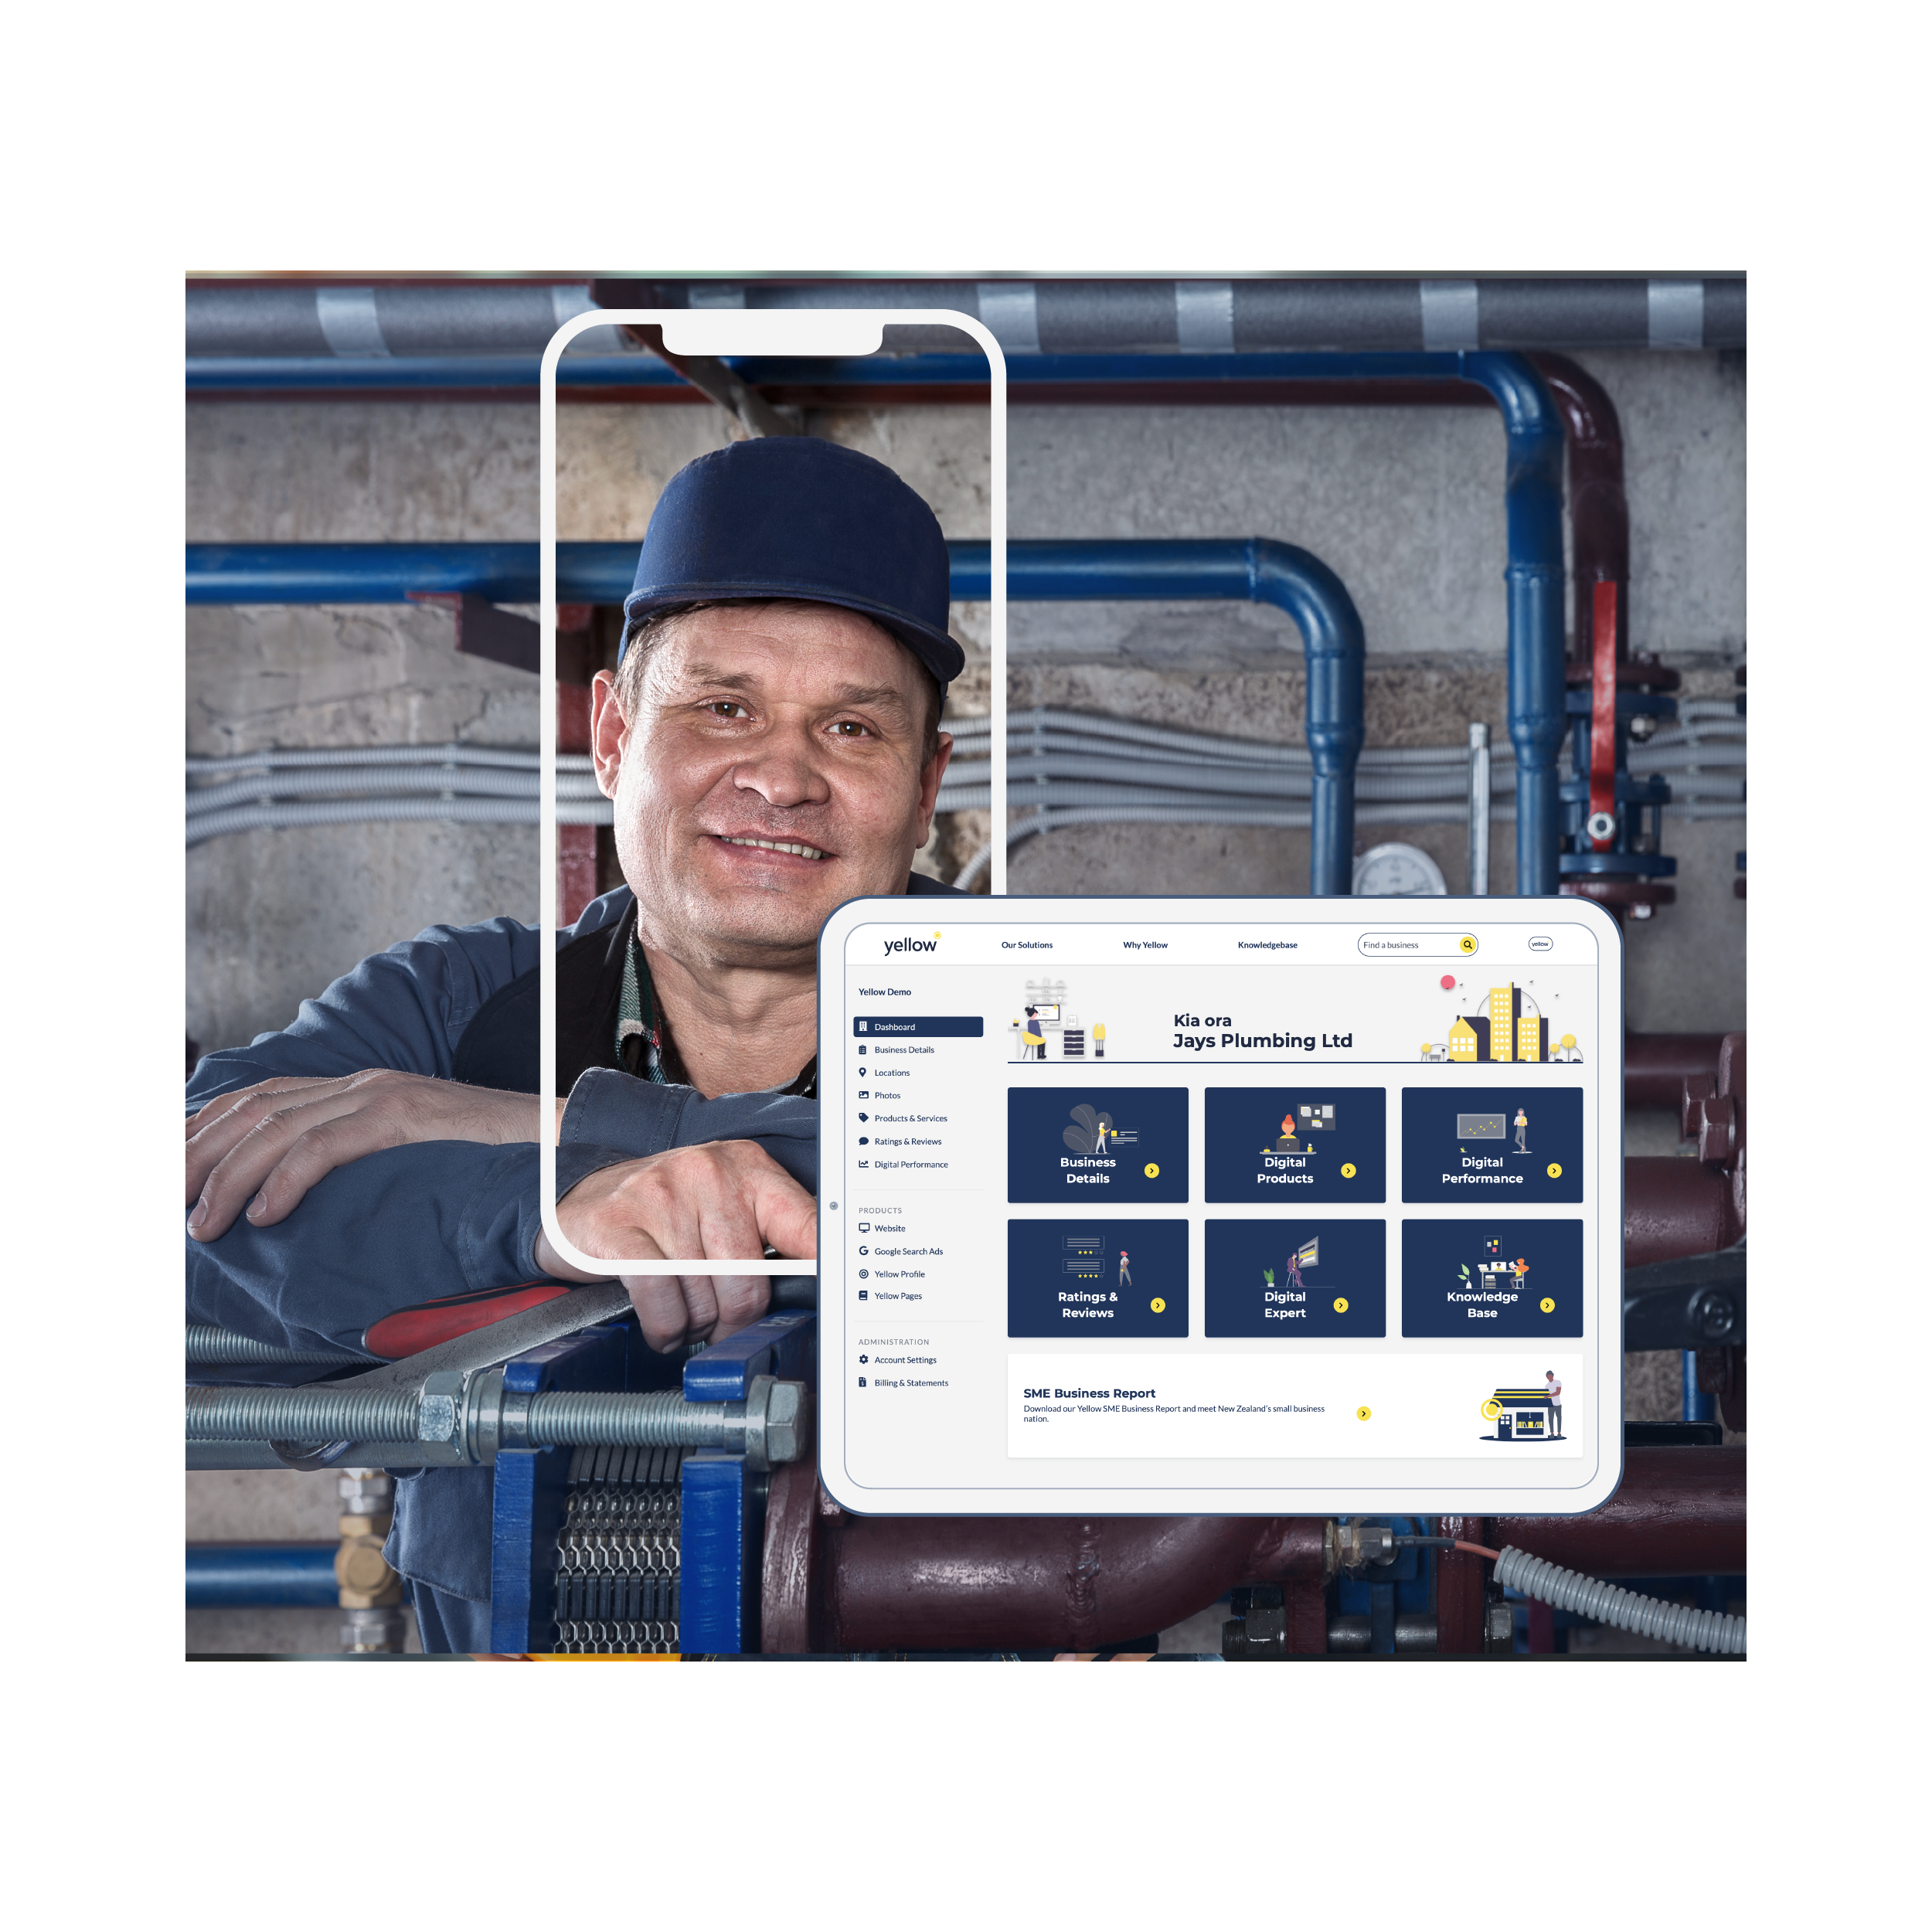 Middle-aged man smiling at the camera with a tablet showing the layout of a Digital Dashboard.